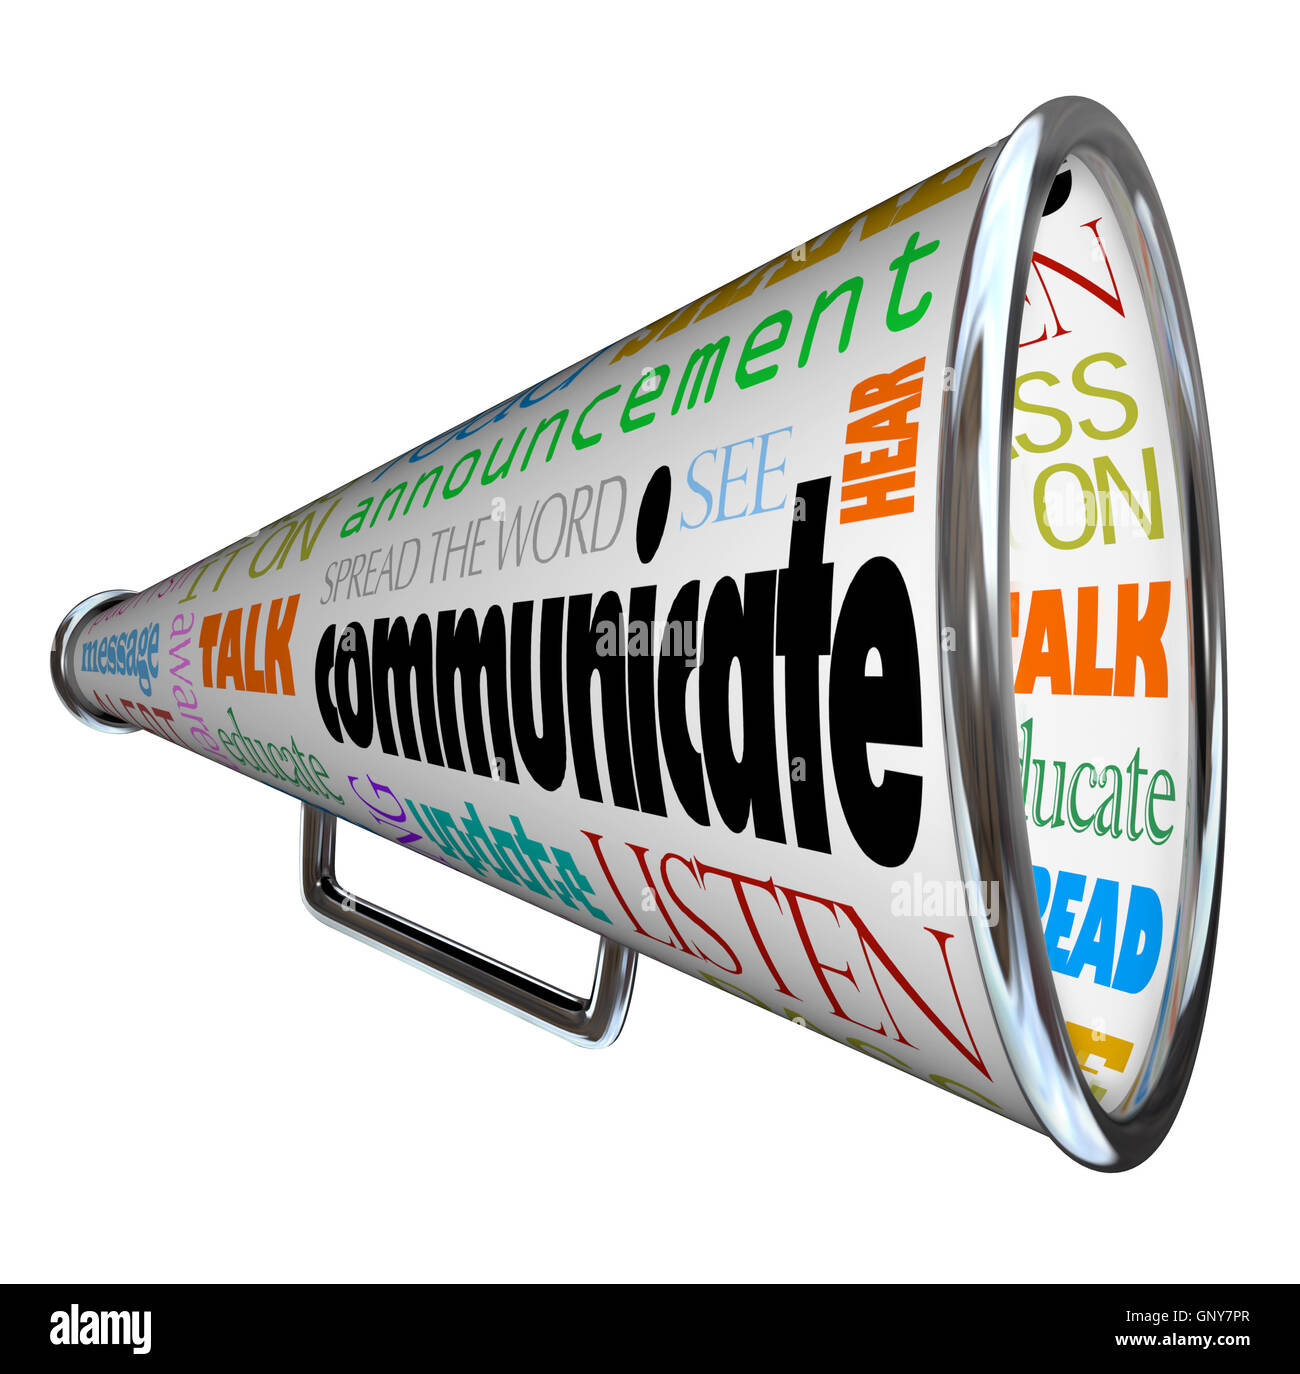 Communicate Bullhorn Megaphone Spread the Word - Stock Image